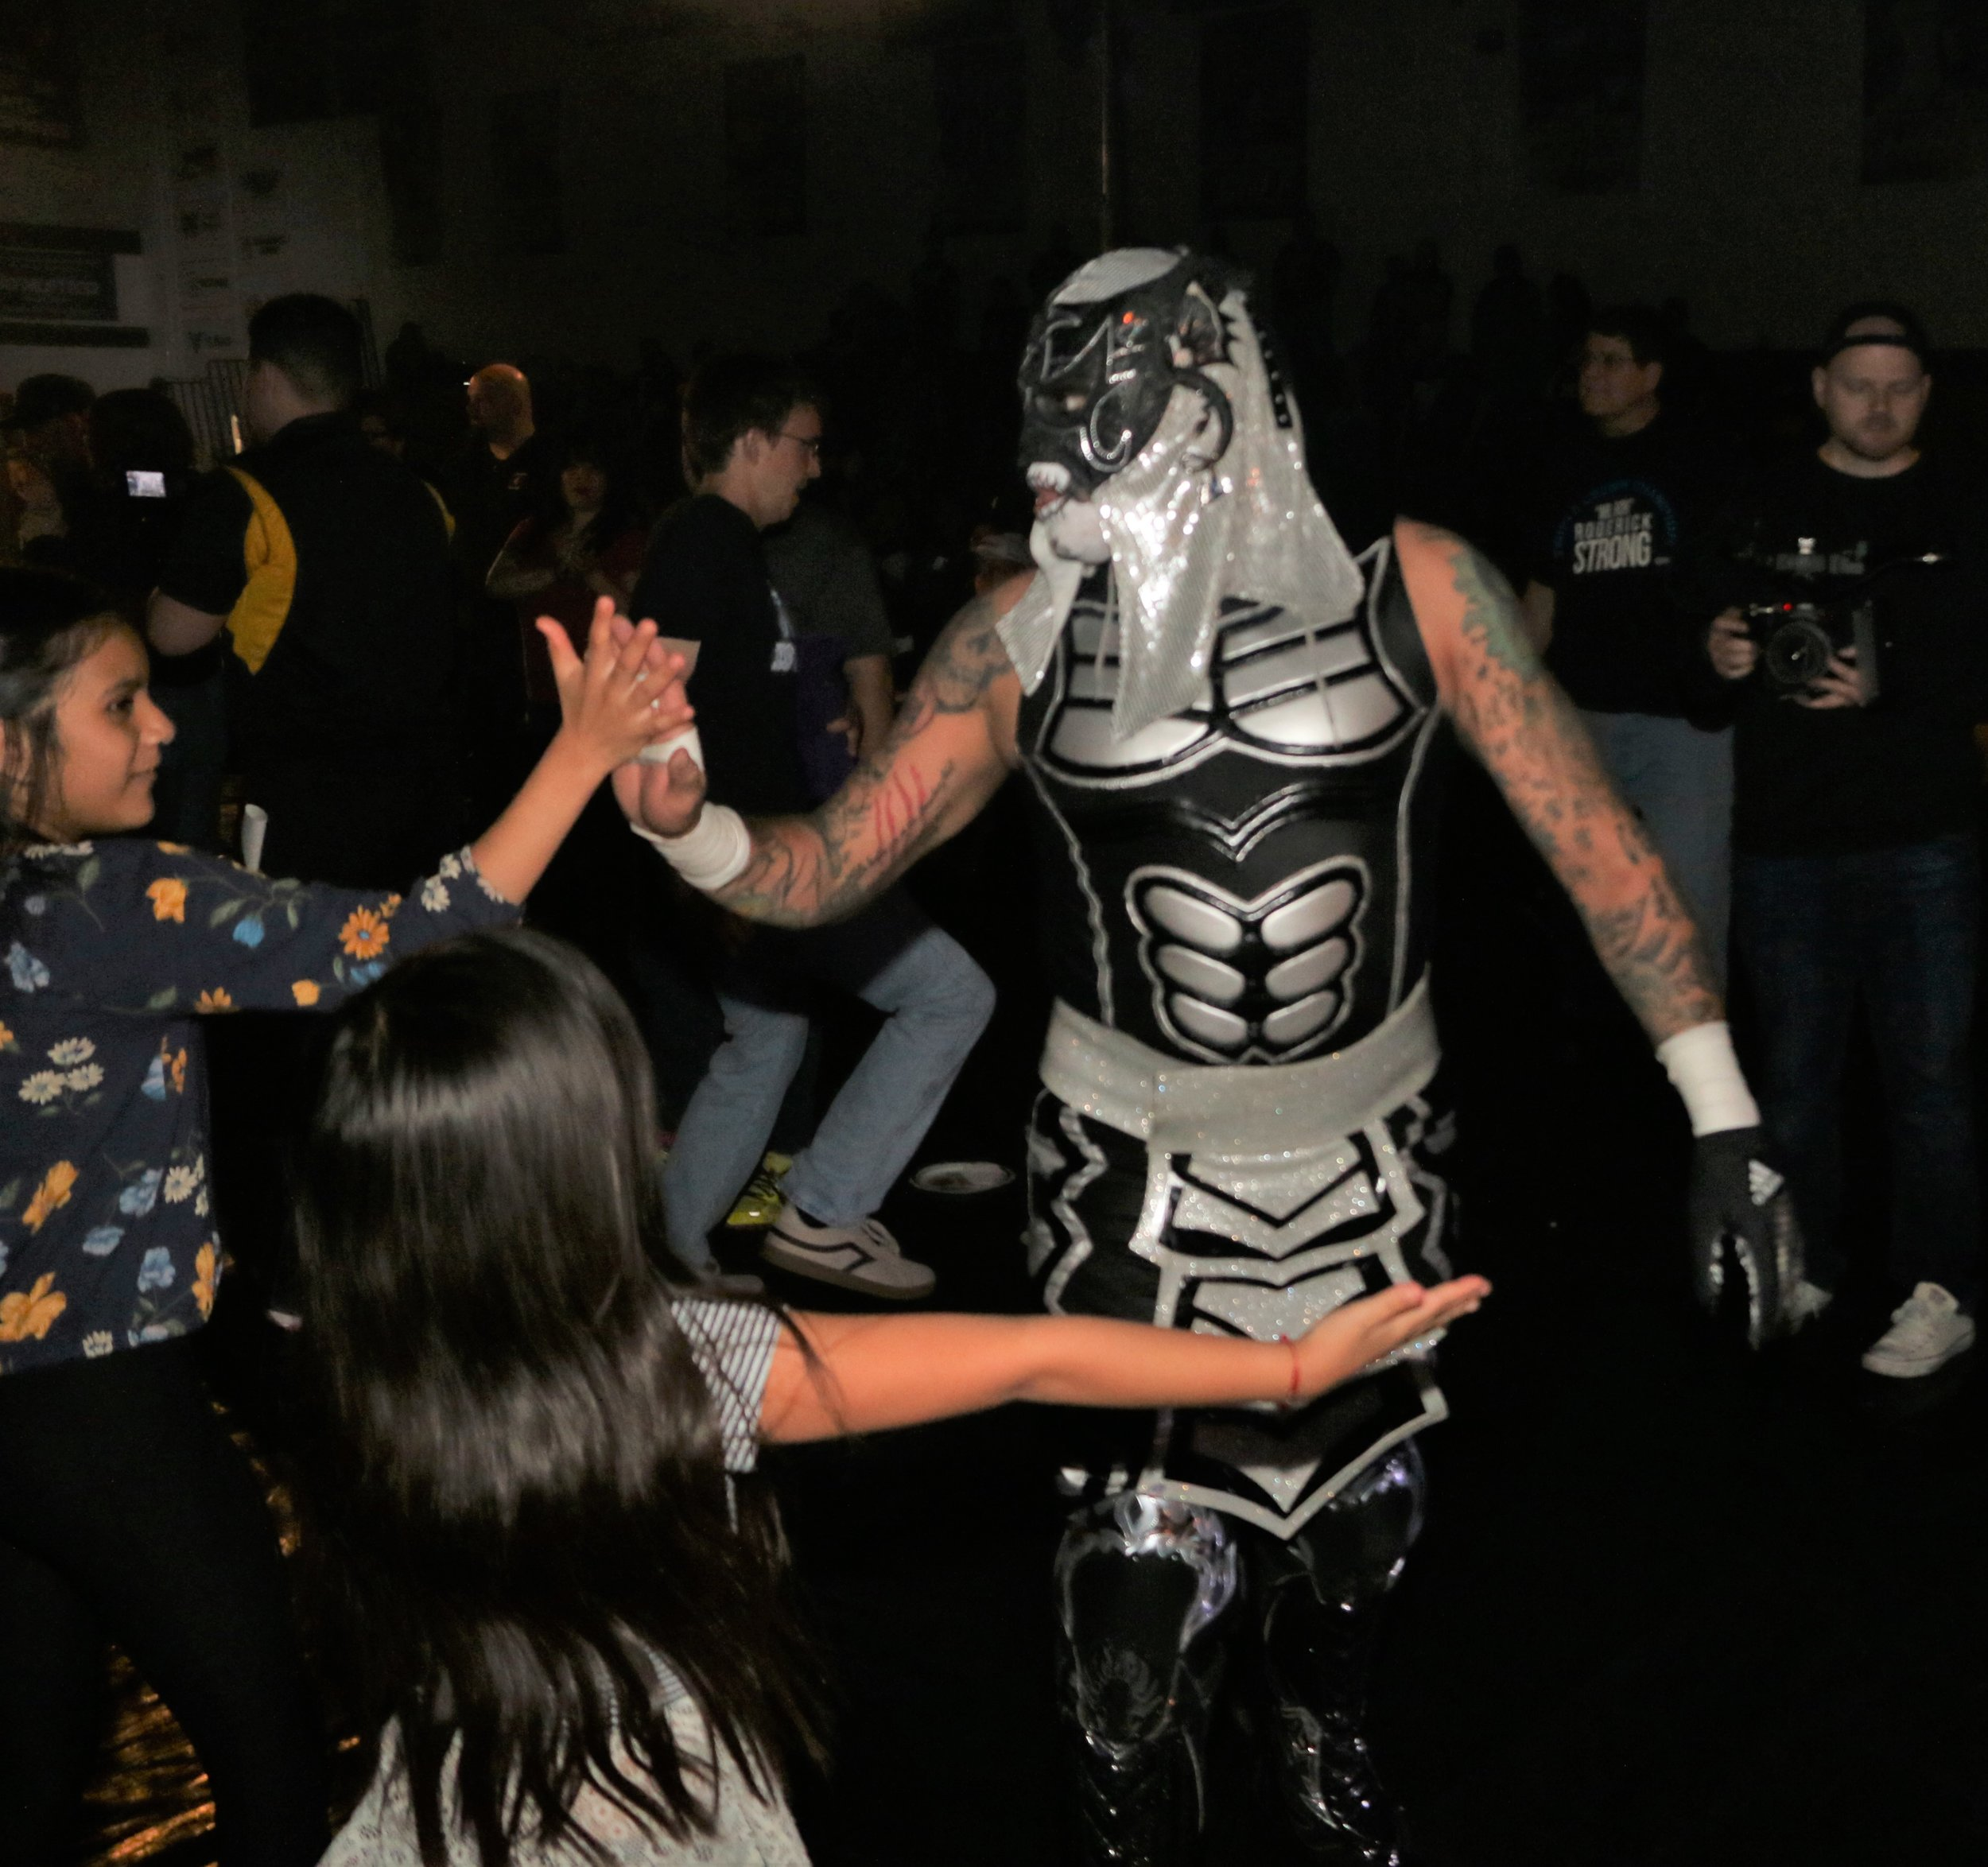 Penta El 0M celebrates with fans after the Lucha Bros. victory over Daga and Kotto Brazil.